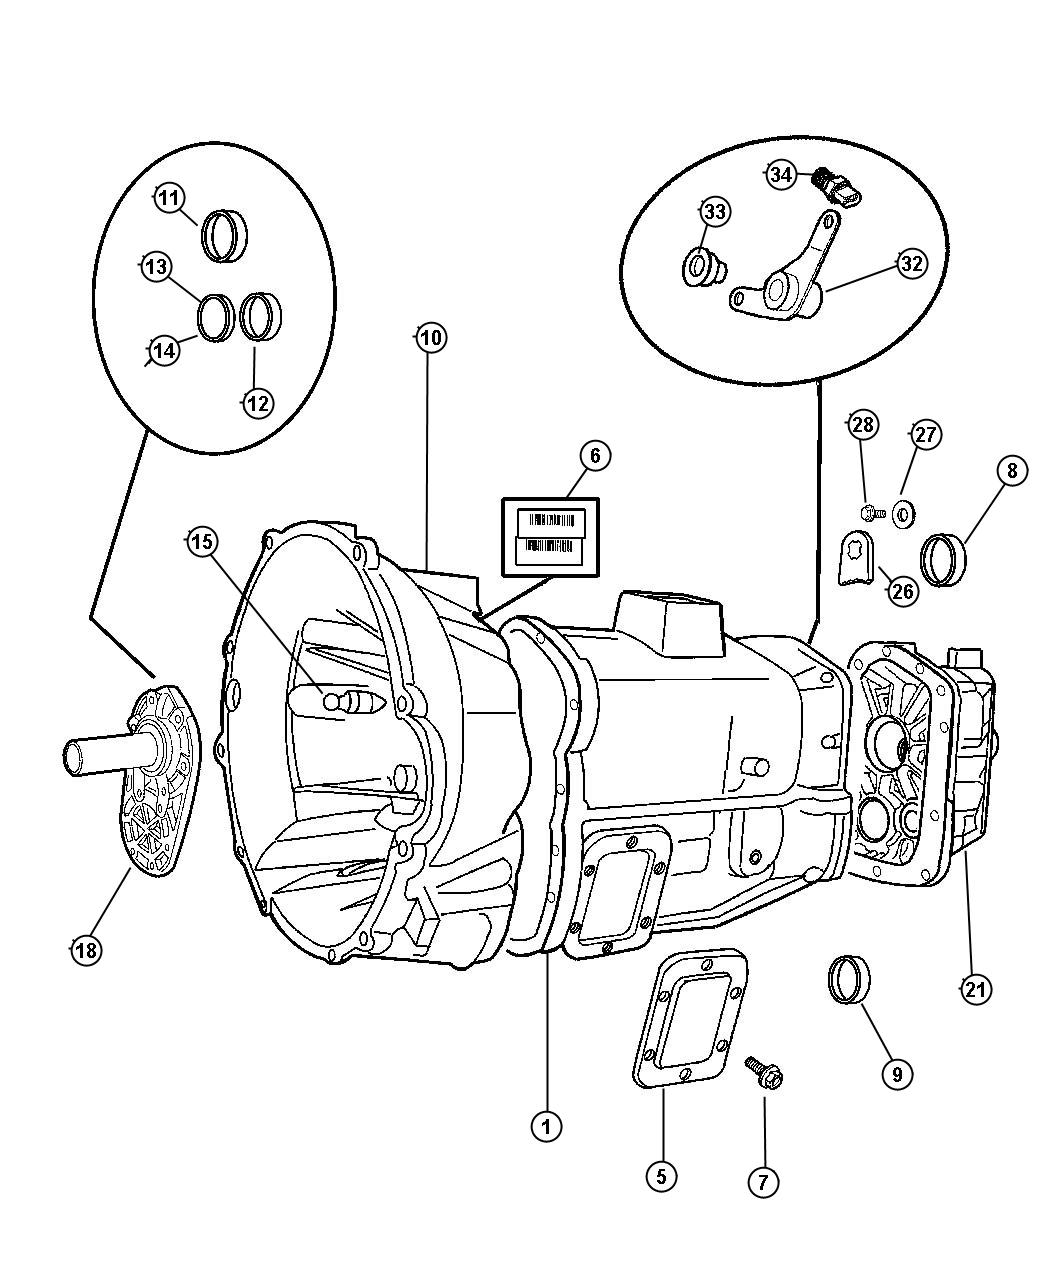 Case and Related Parts - 5600 6 Speed [6-Speed HD Manual Transmission]. Diagram